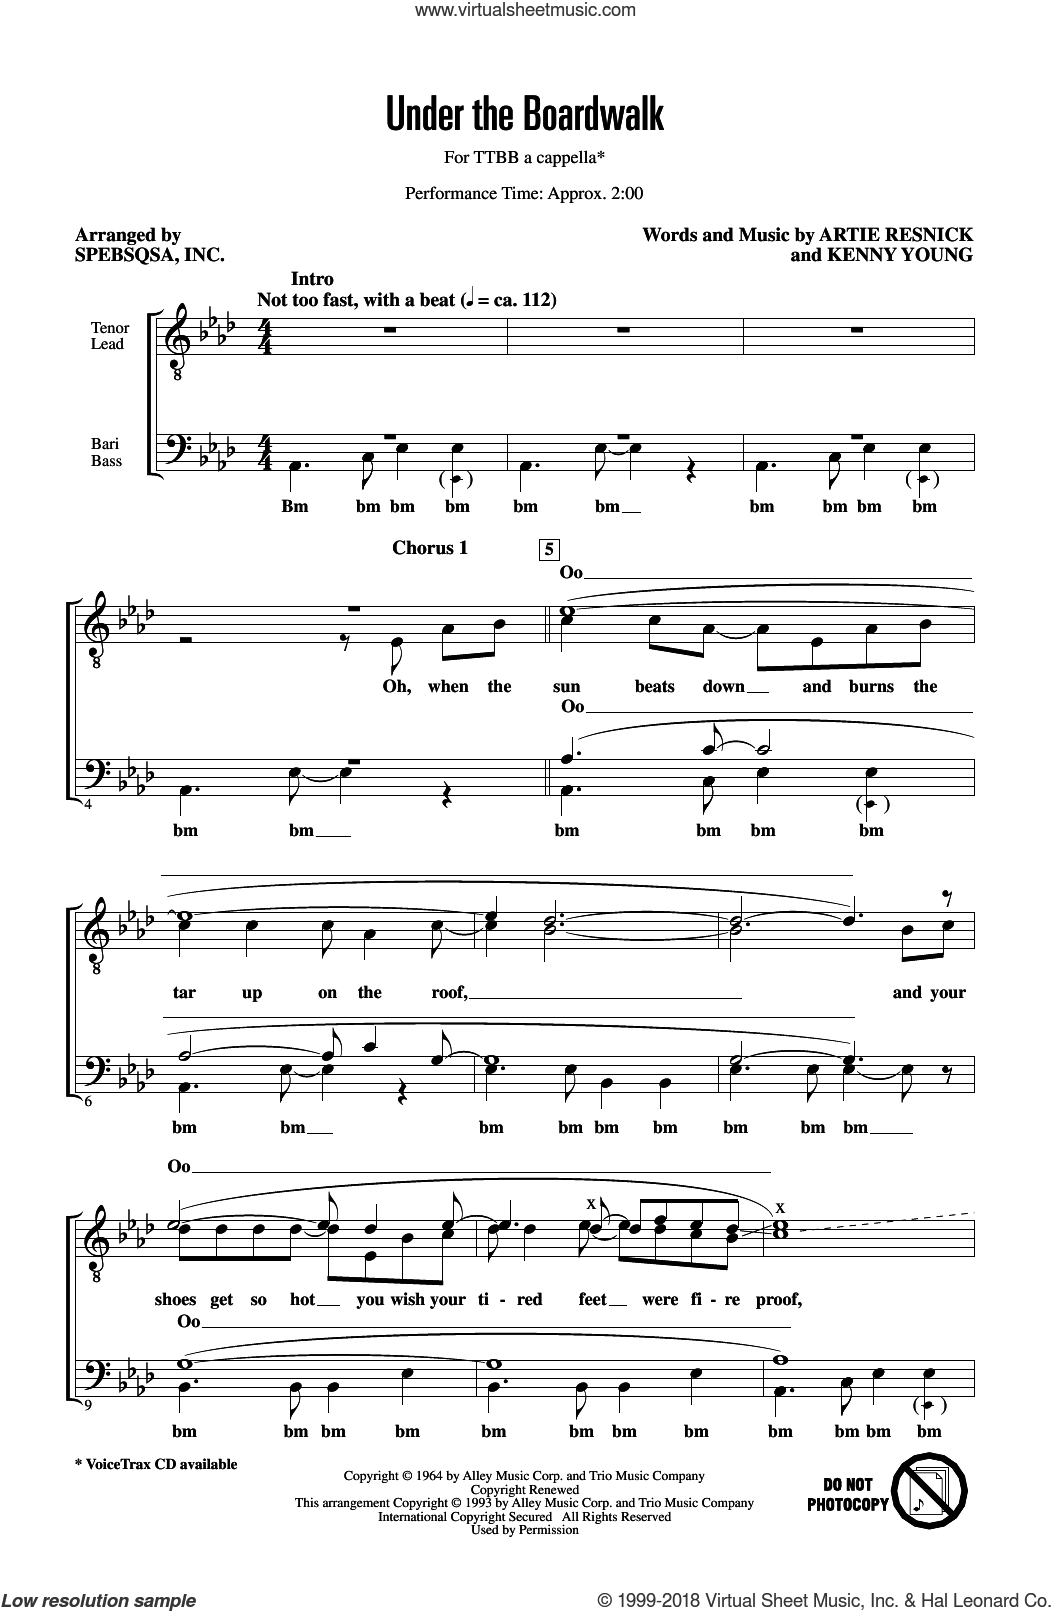 Under The Boardwalk (arr. SPEBSQSA, Inc.) sheet music for choir (TTBB: tenor, bass) by The Drifters, SPEBSQSA, Inc., Artie Resnick and Kenny Young, intermediate skill level